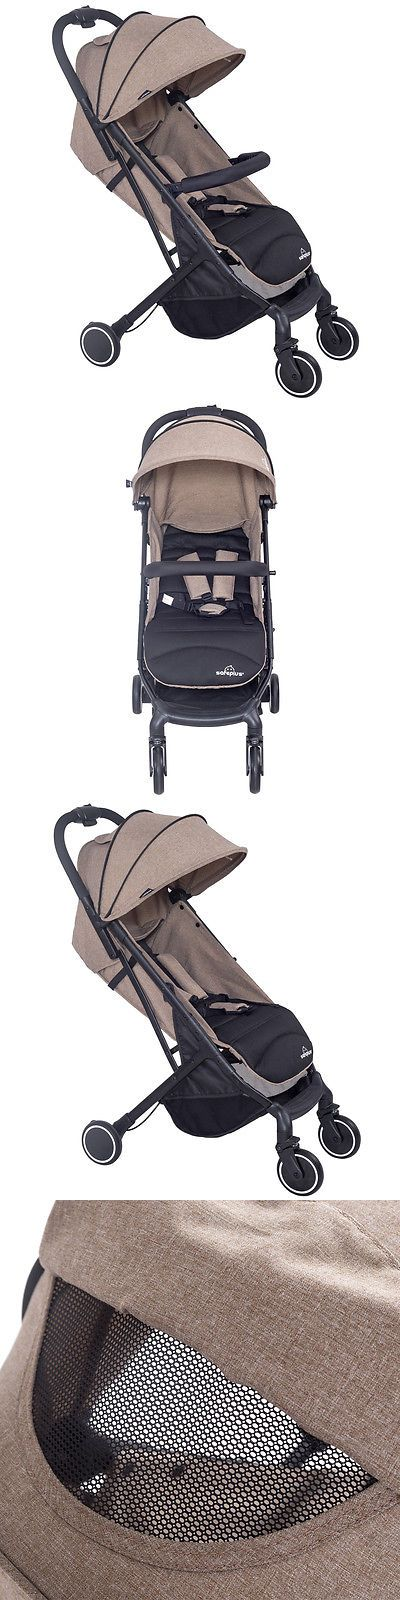 Baby: Lightweight Foldable Baby Kids Travel Stroller Pushchair Buggy Newborn Infant -> BUY IT NOW ONLY: $85.99 on eBay!